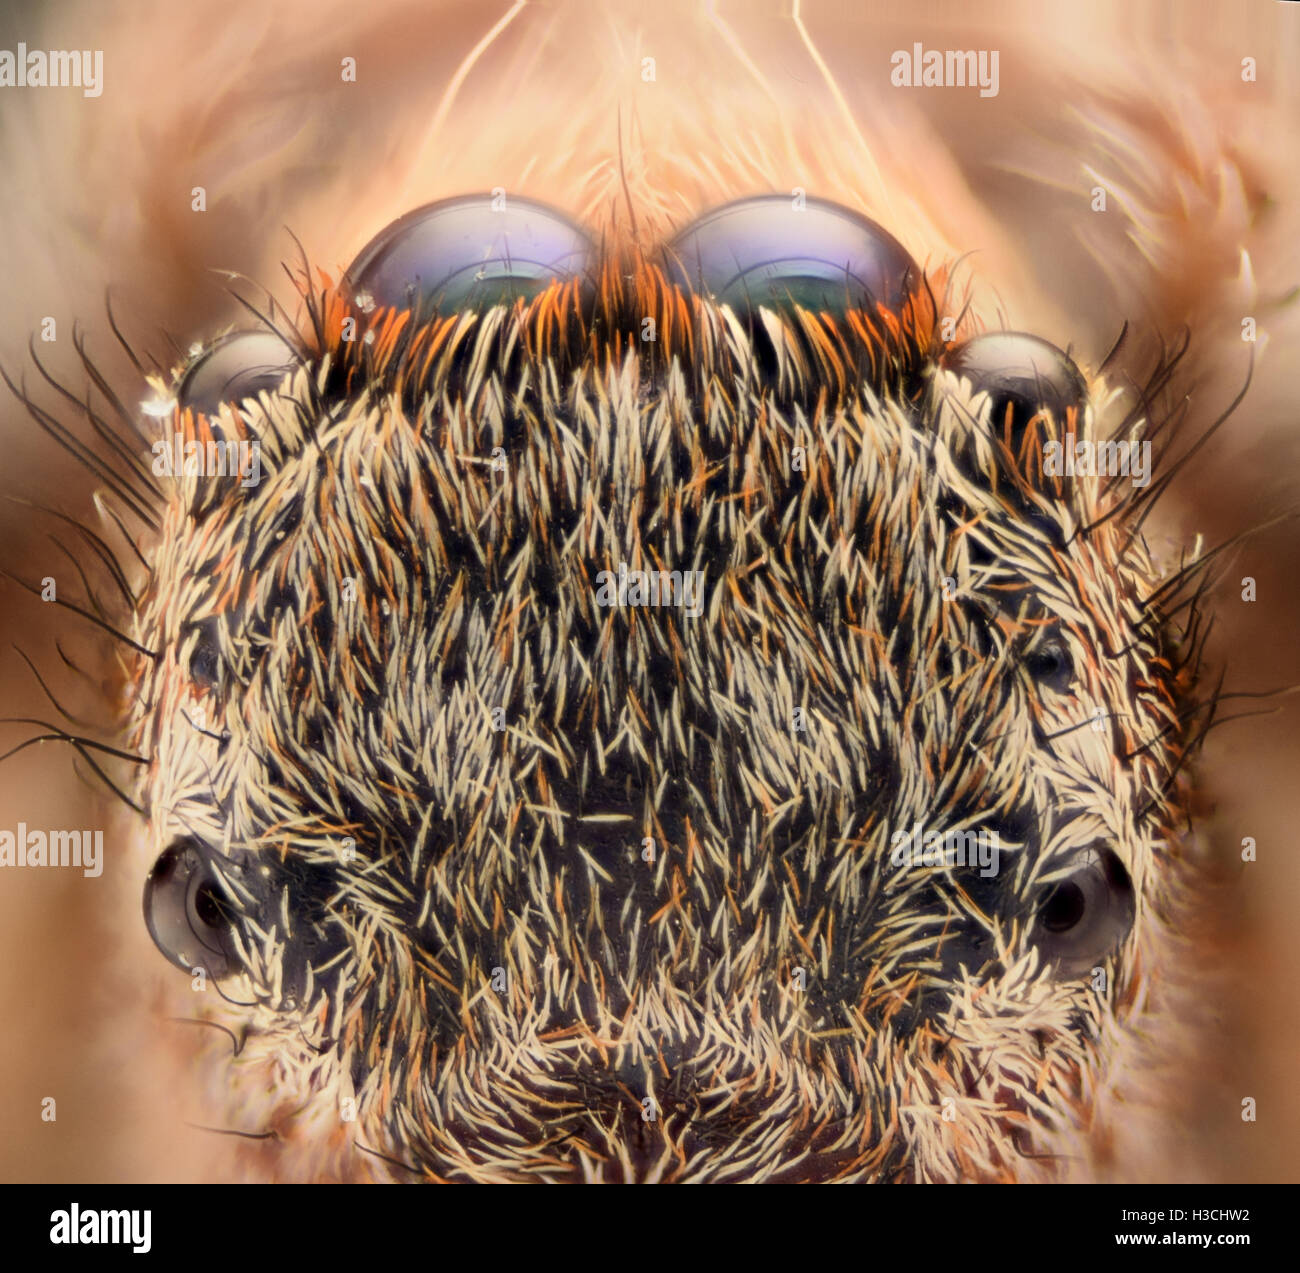 Extreme magnification - Jumping spider eyes and head from above - Stock Image